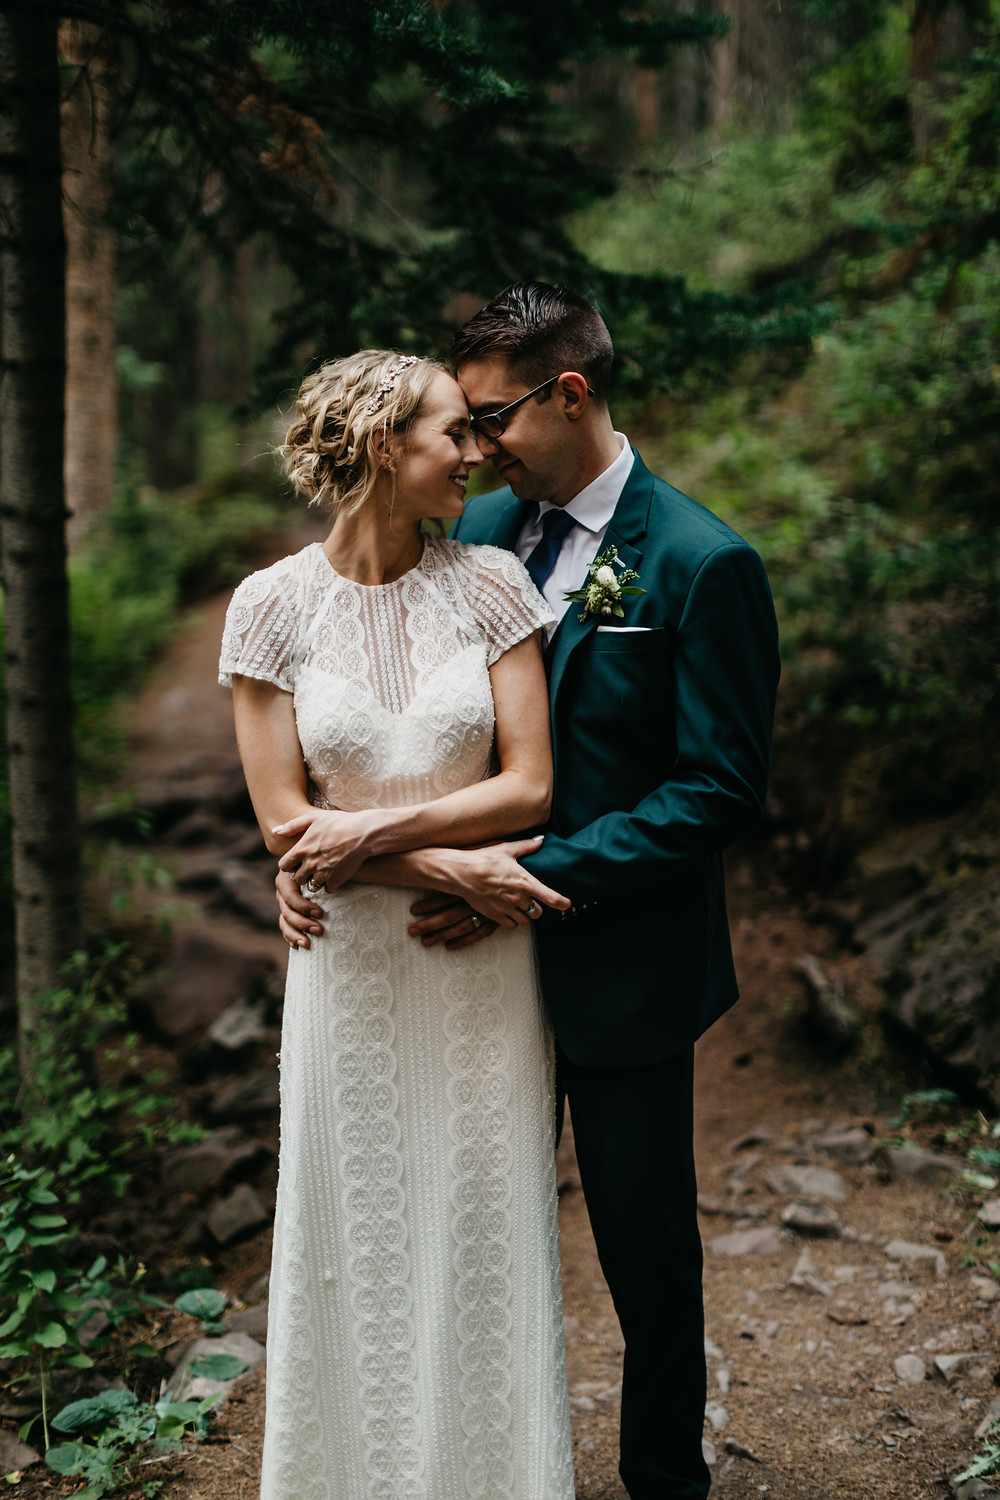 Mallory & David Aspen Elopement - Emma Lea Floral- Our Two Hearts Photography - Maroon Bells - Aspen Wedding - Denver Colorado Fine Art Floral Design - Luxury Wedding and Event Florist - Anemone | Rose  | Astrantia | Hops | Jasmine | White, Ivory, Navy | Mountain Wedding | Organic |